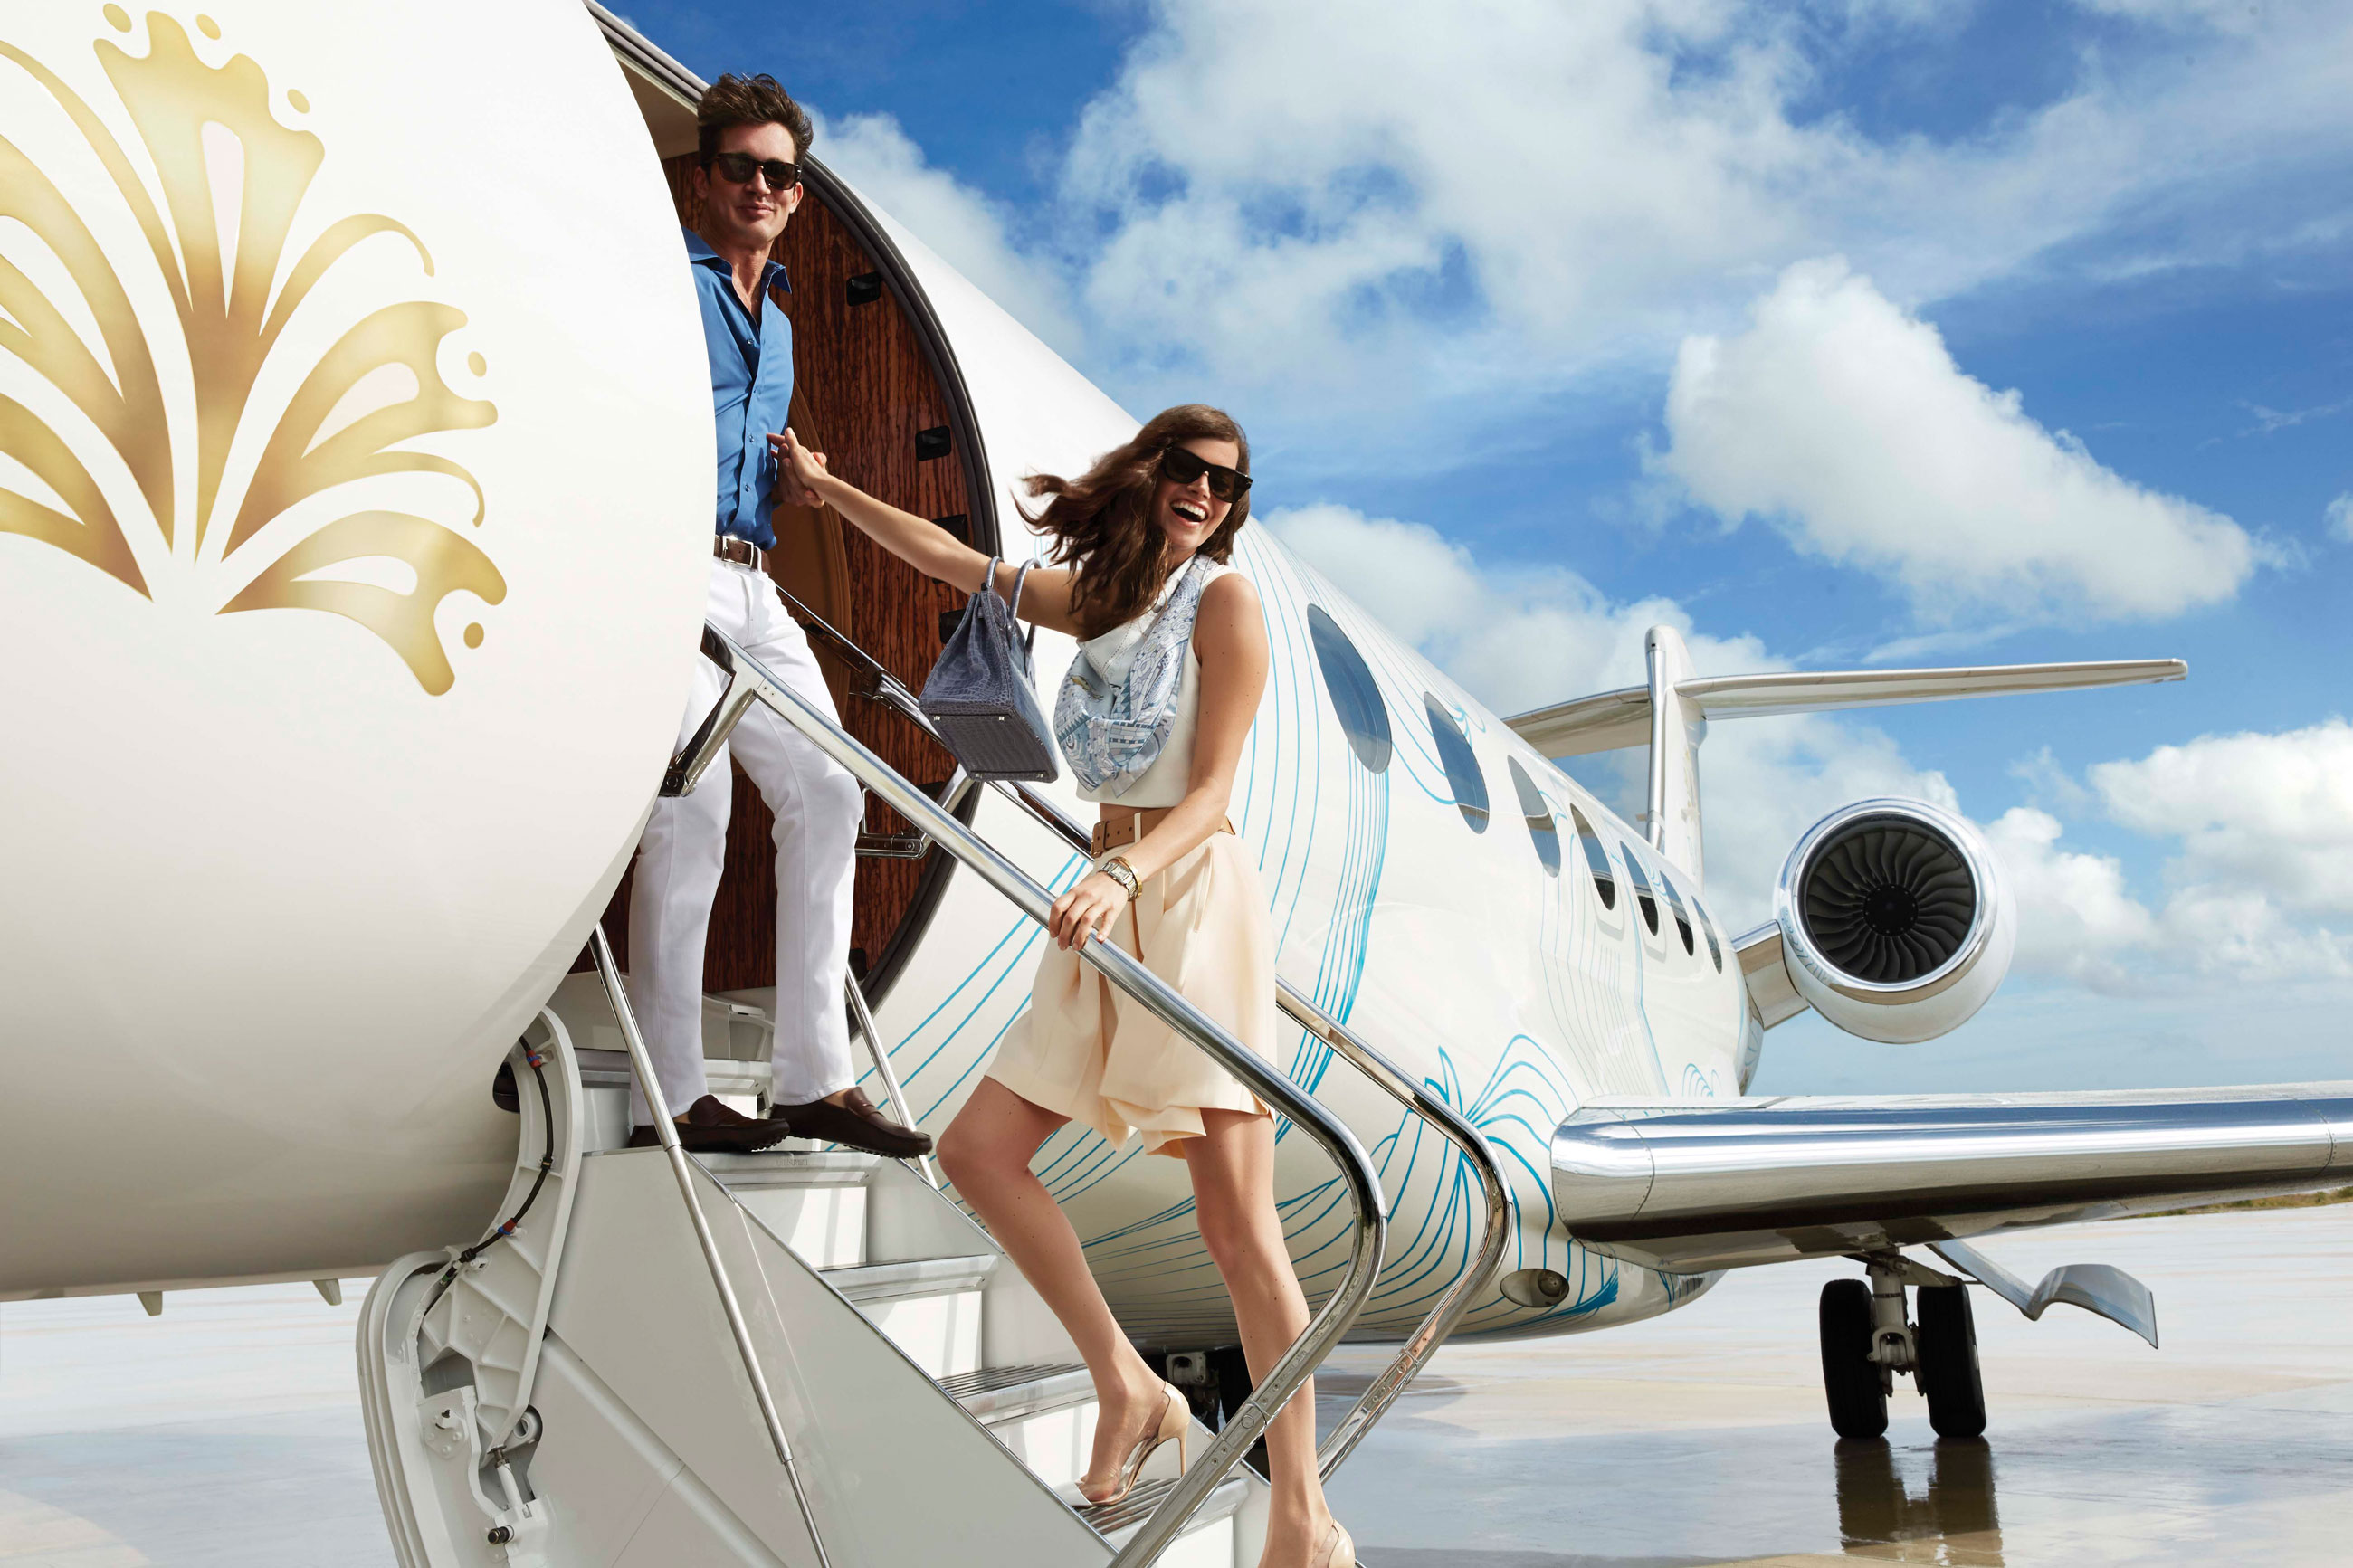 Boarding private plane